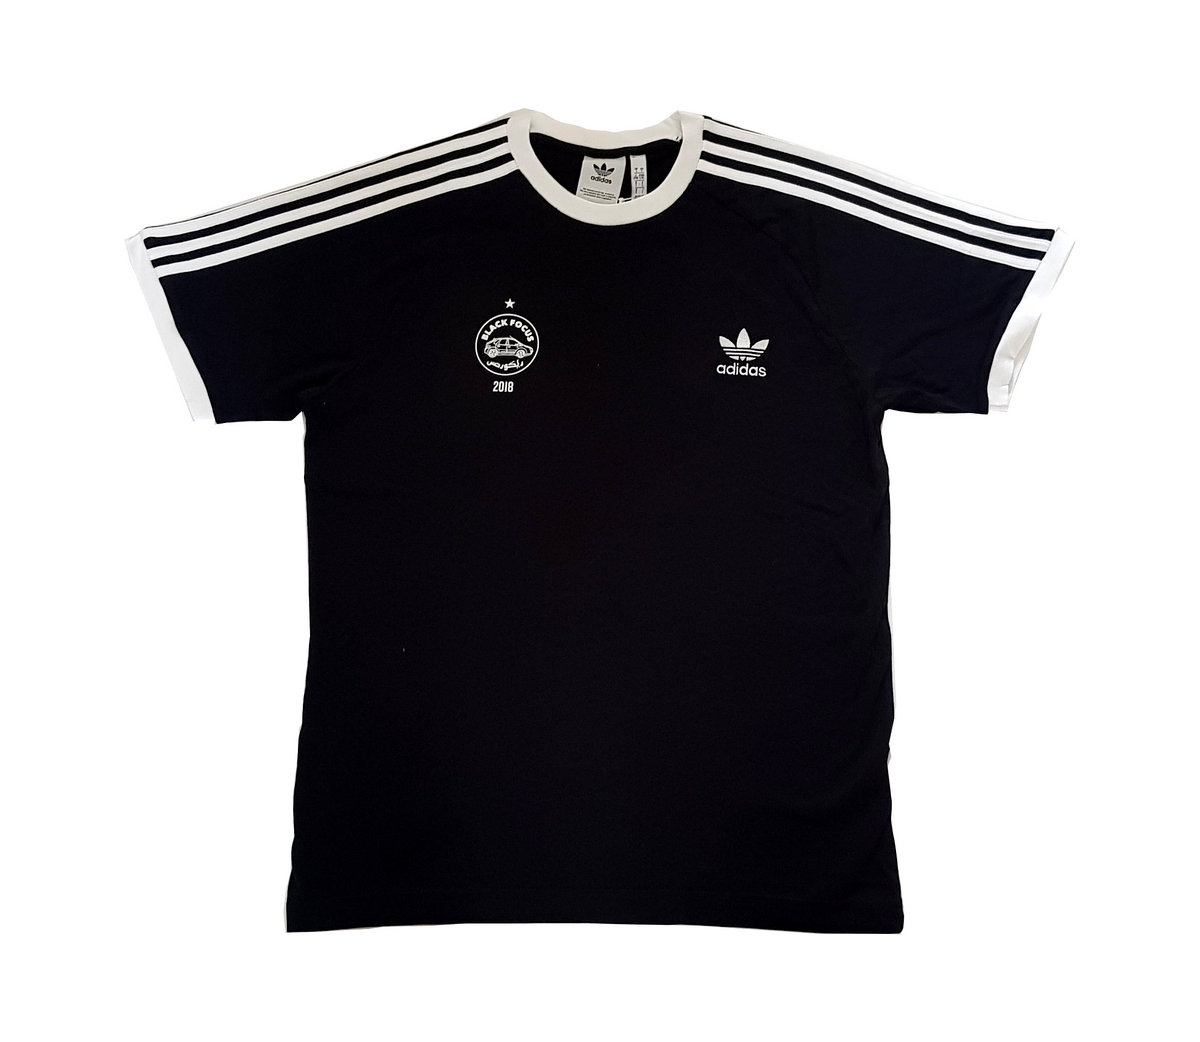 ccc57d1f50fc6 Adidas x Black Focus World Cup T-shirt | Black Focus Records